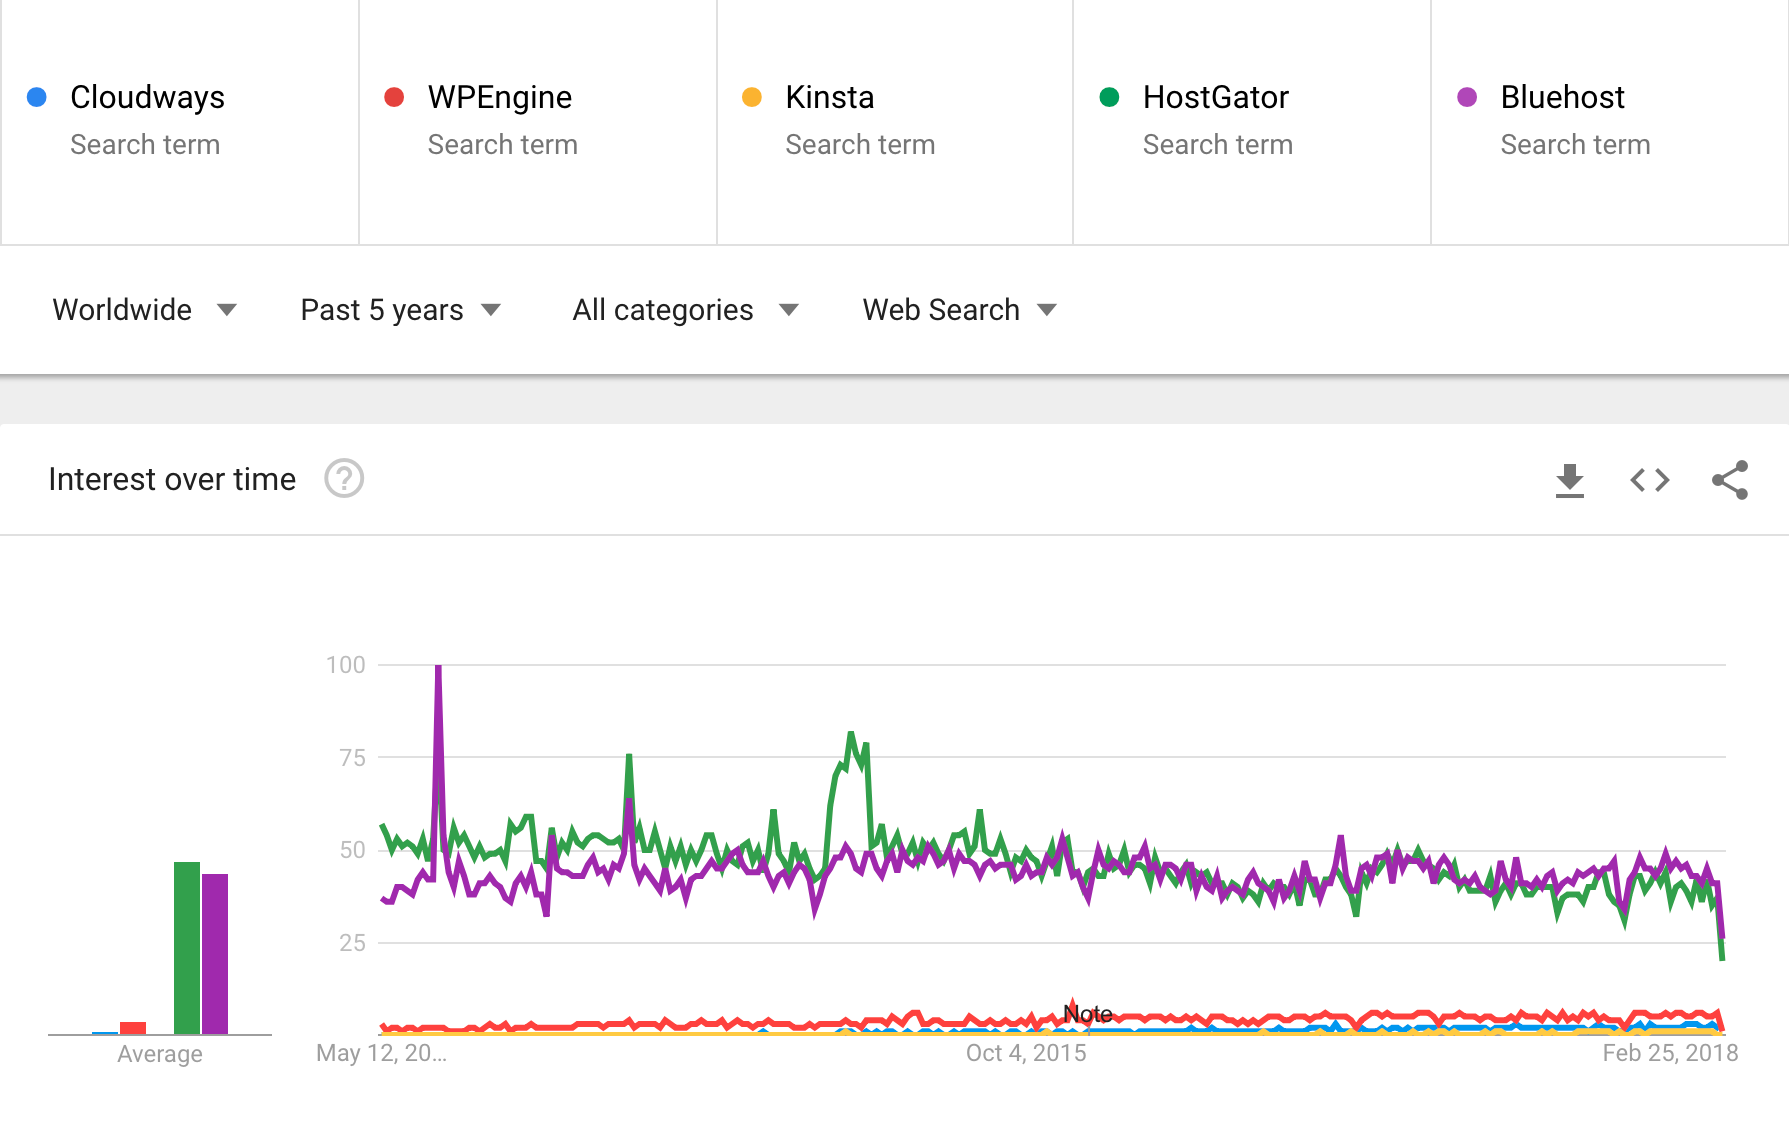 HostGator and Bluehost trends